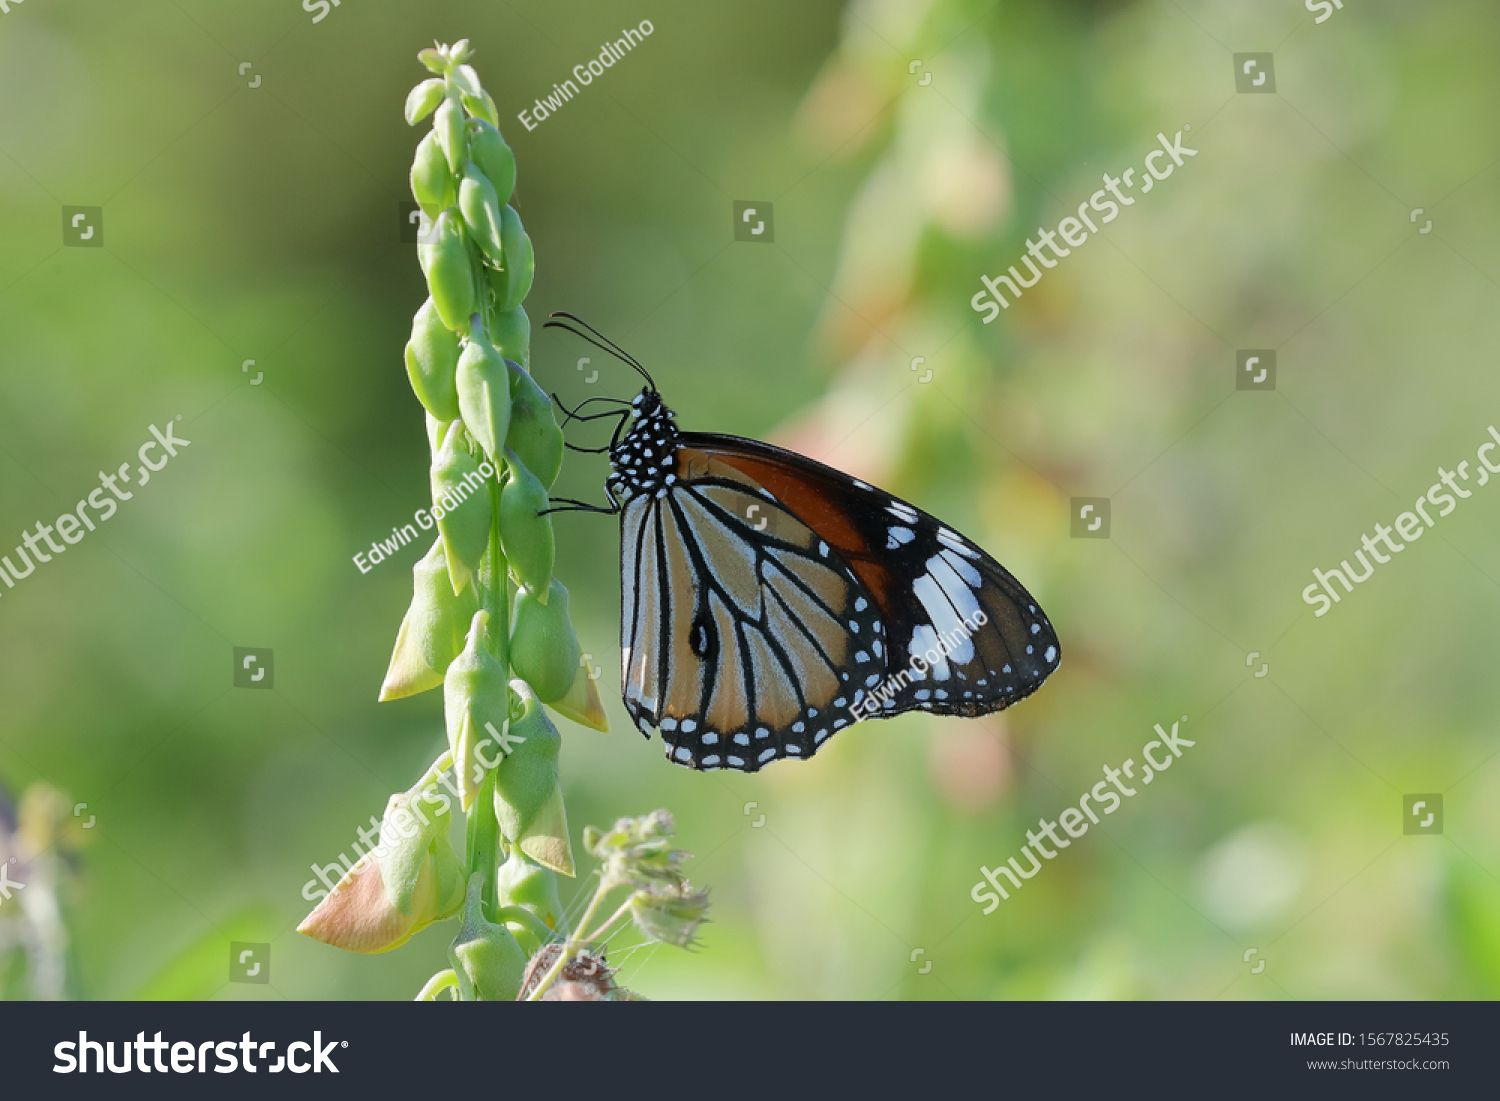 Danaus genutia, the common tiger, is one of the common butterflies of India. It belongs to the \ #Ad , #ad, #common#genutia#Danaus#tiger